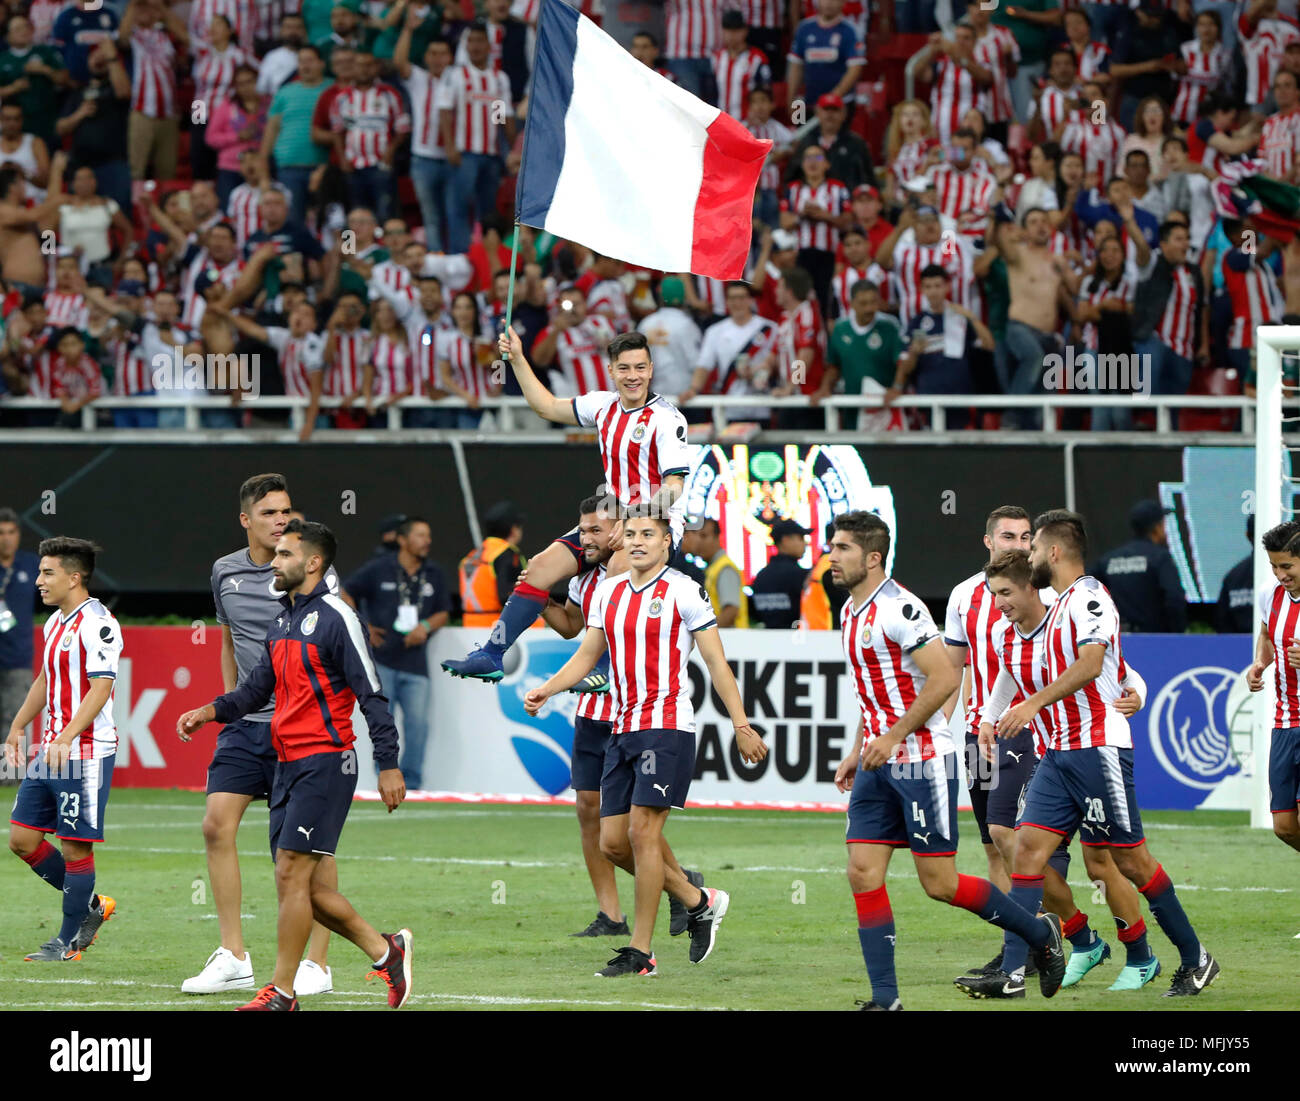 the players of the chivas de guadalajara of mexican soccer celebrate